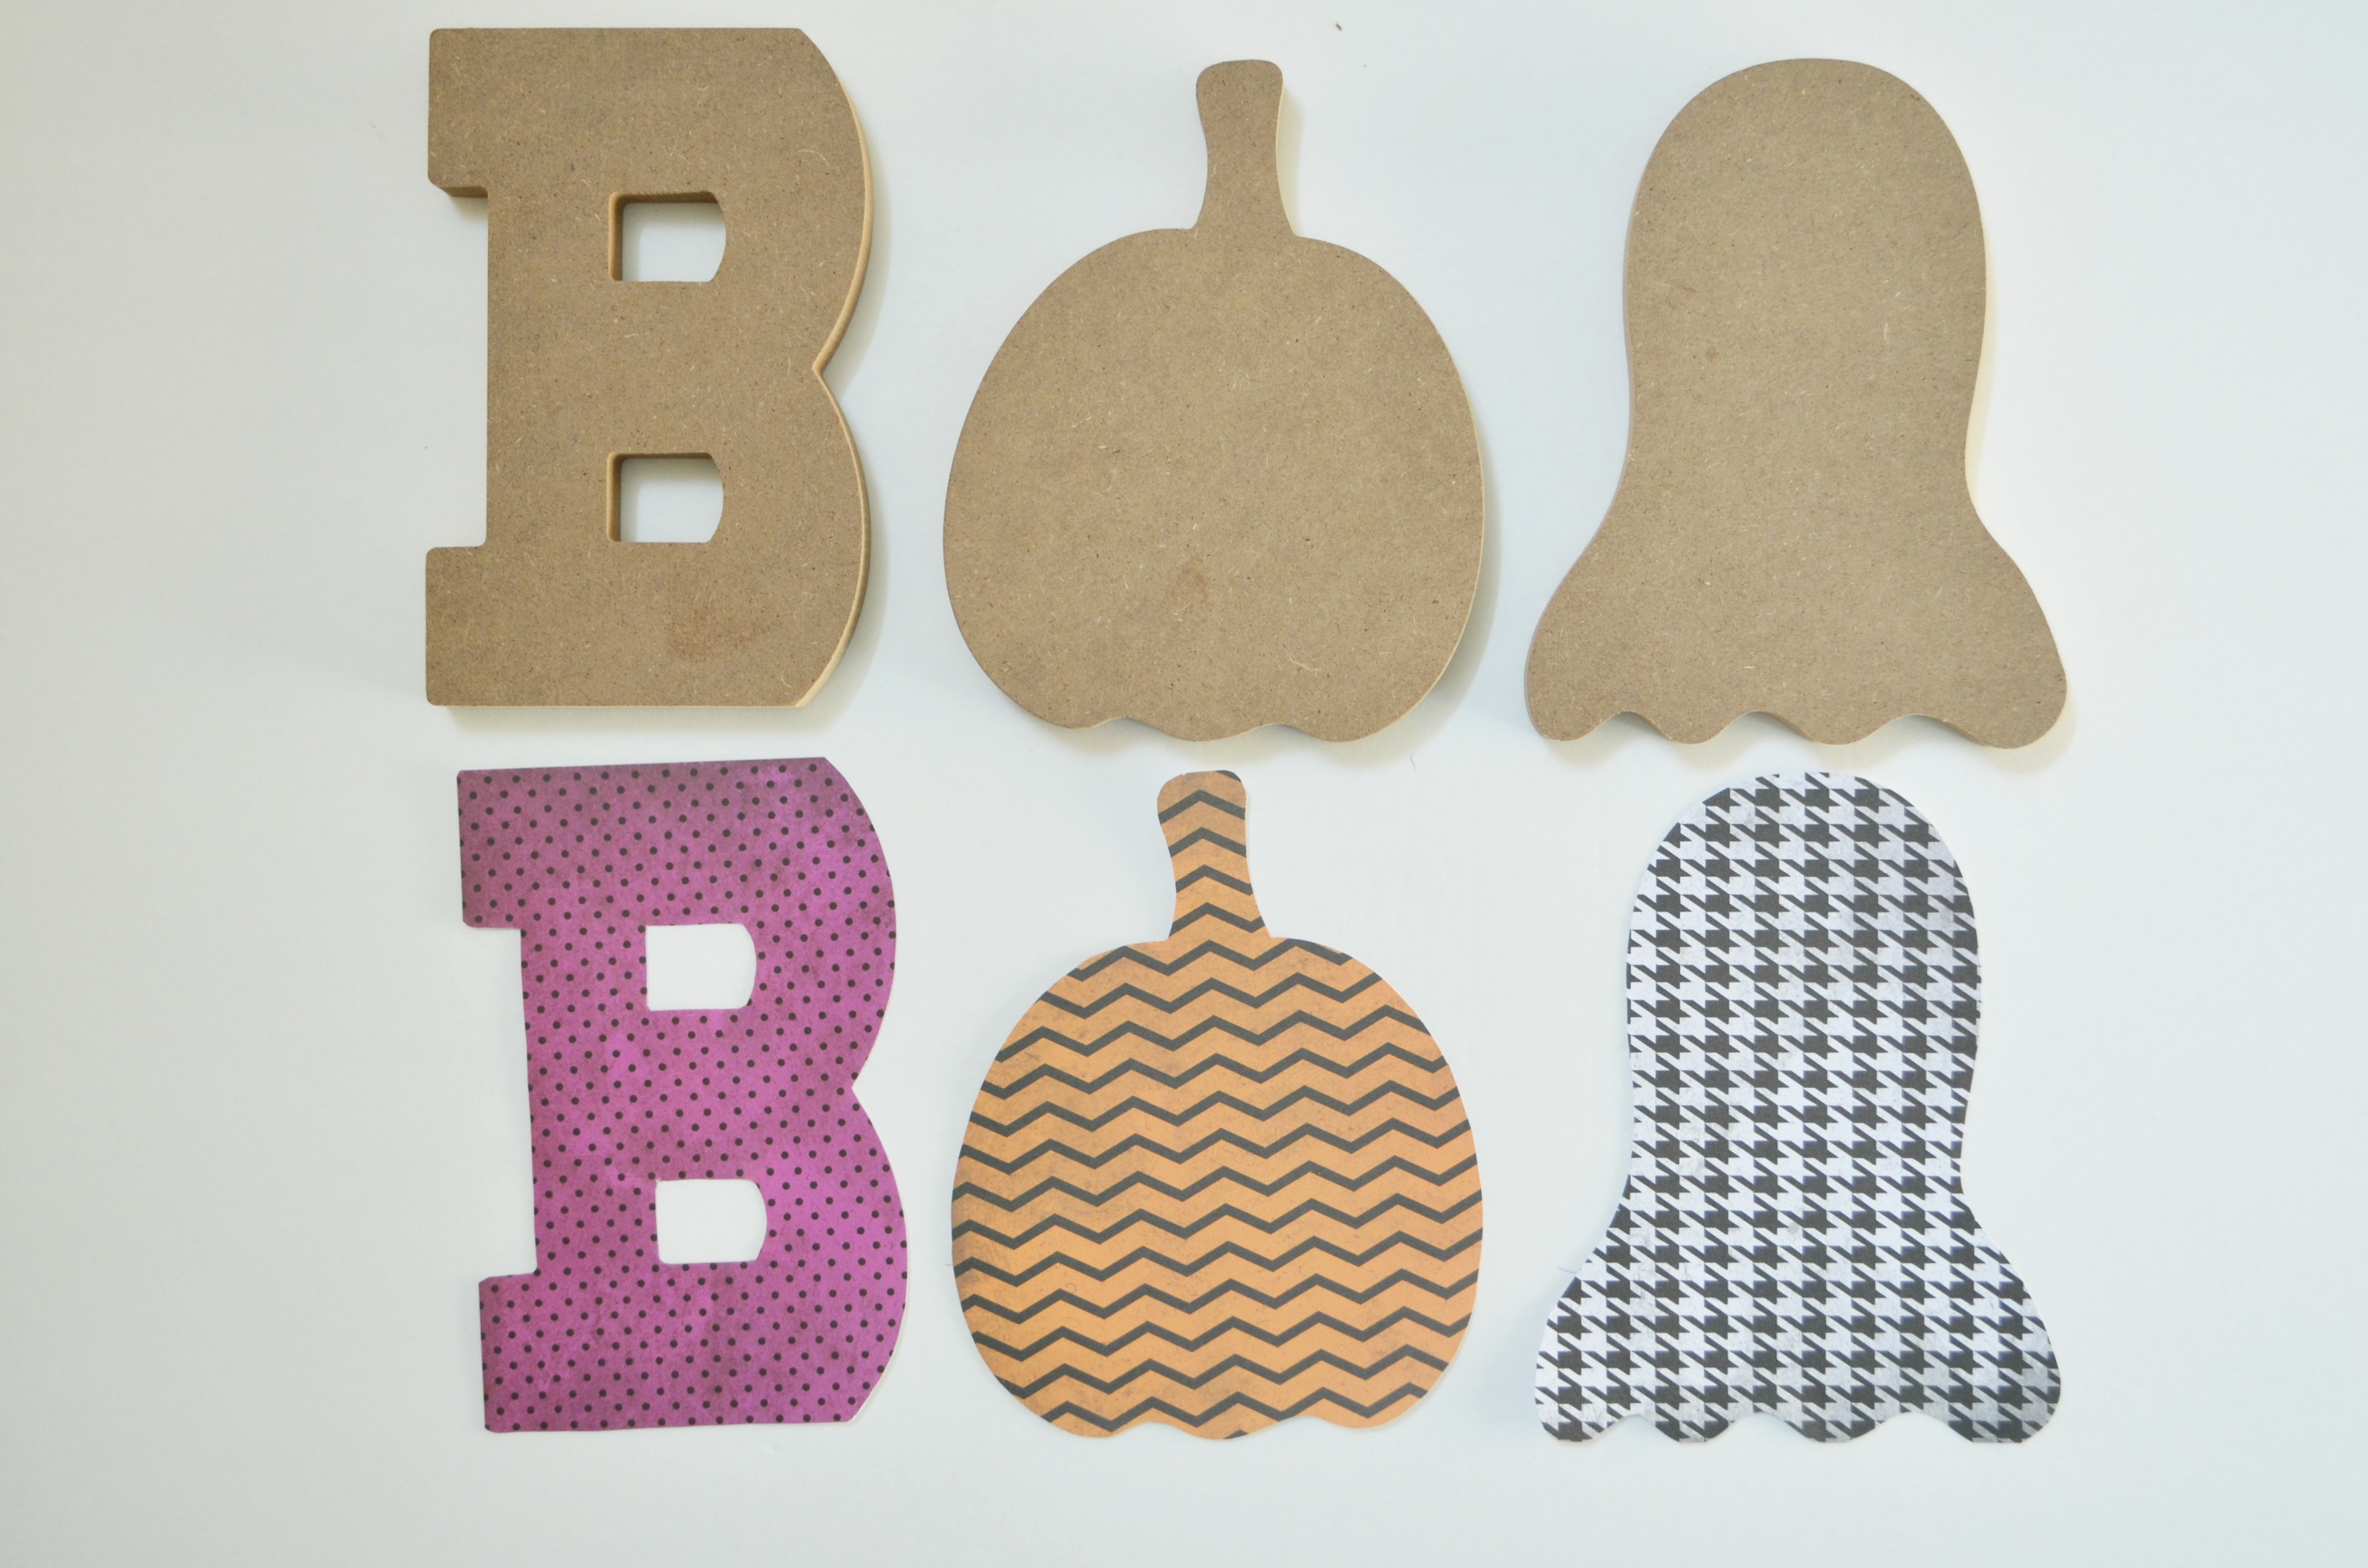 How to scrapbook letters - Cut Out Each Scrapbook Paper Letter